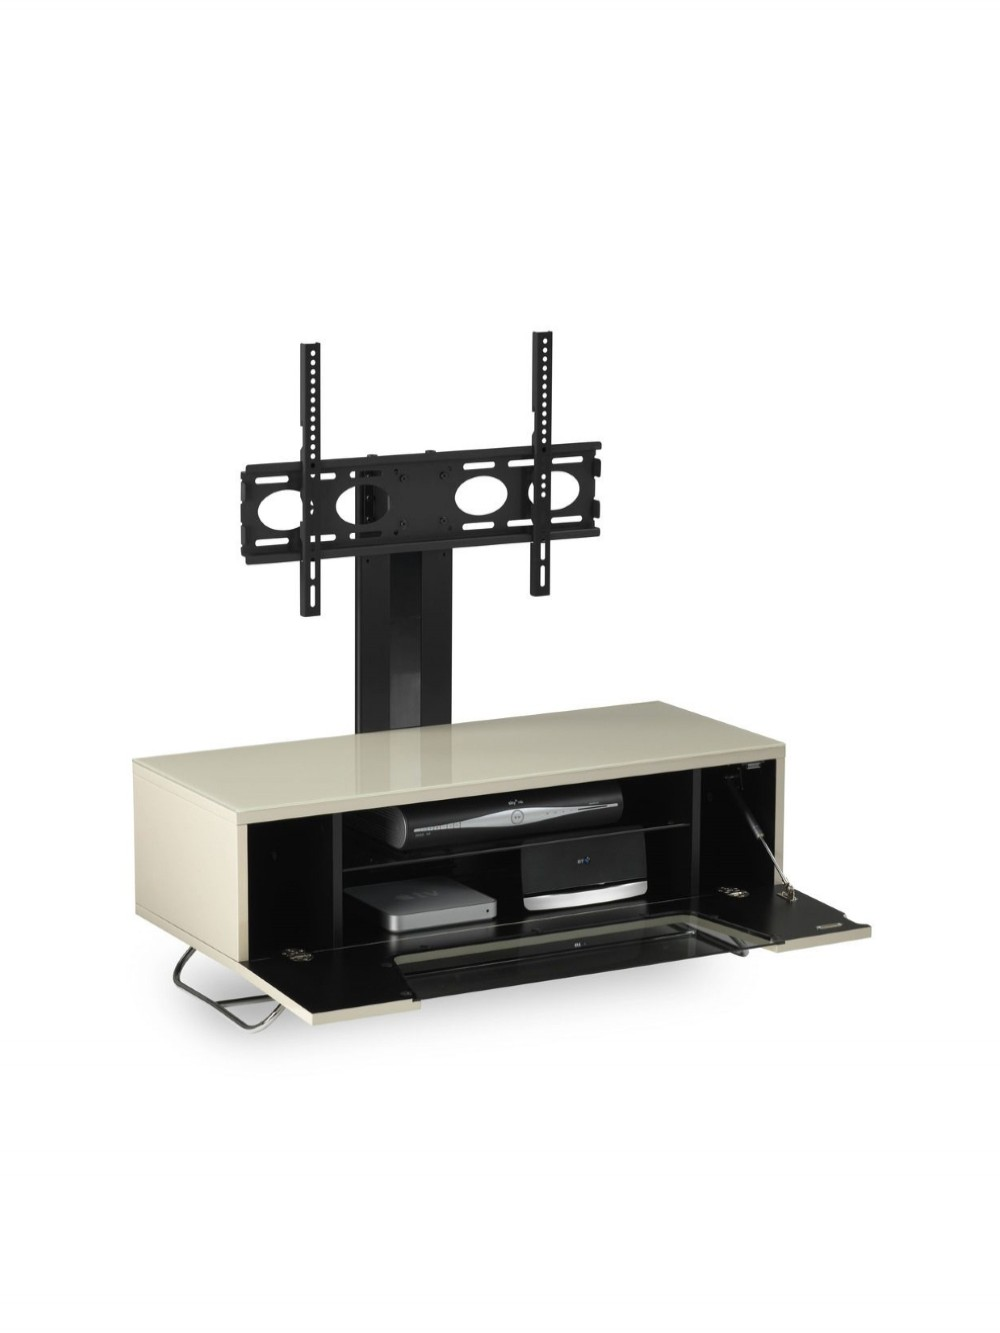 Alphason CRO2-1200BKT-IV Chromium TV Stand inc TV Bracket - Ivory